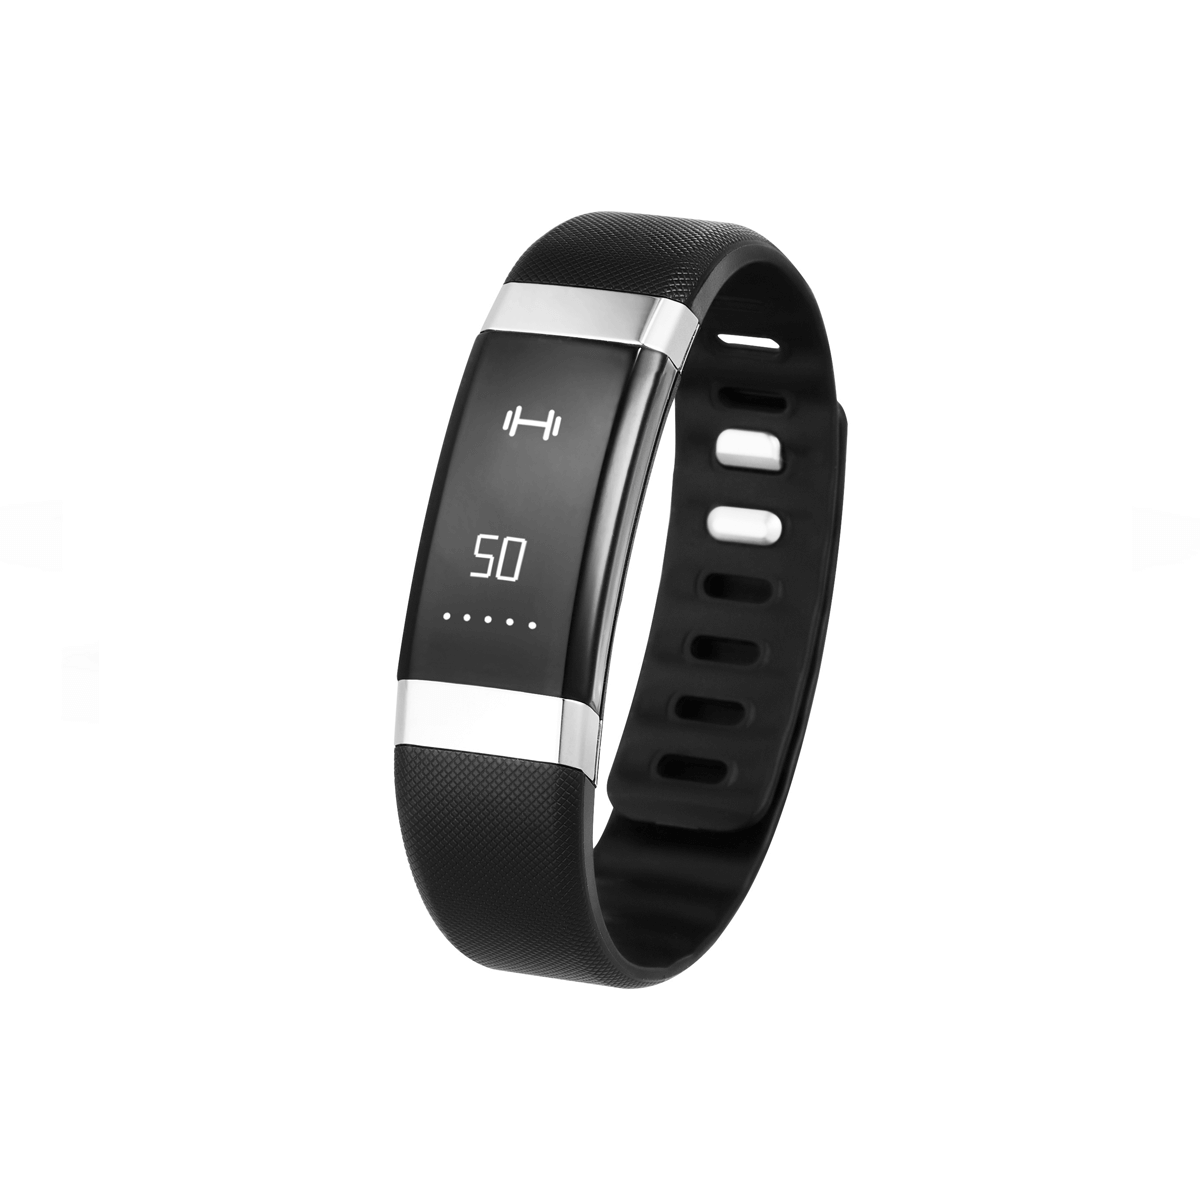 body composition inbody band inbody band2 wearable body composition analyzer